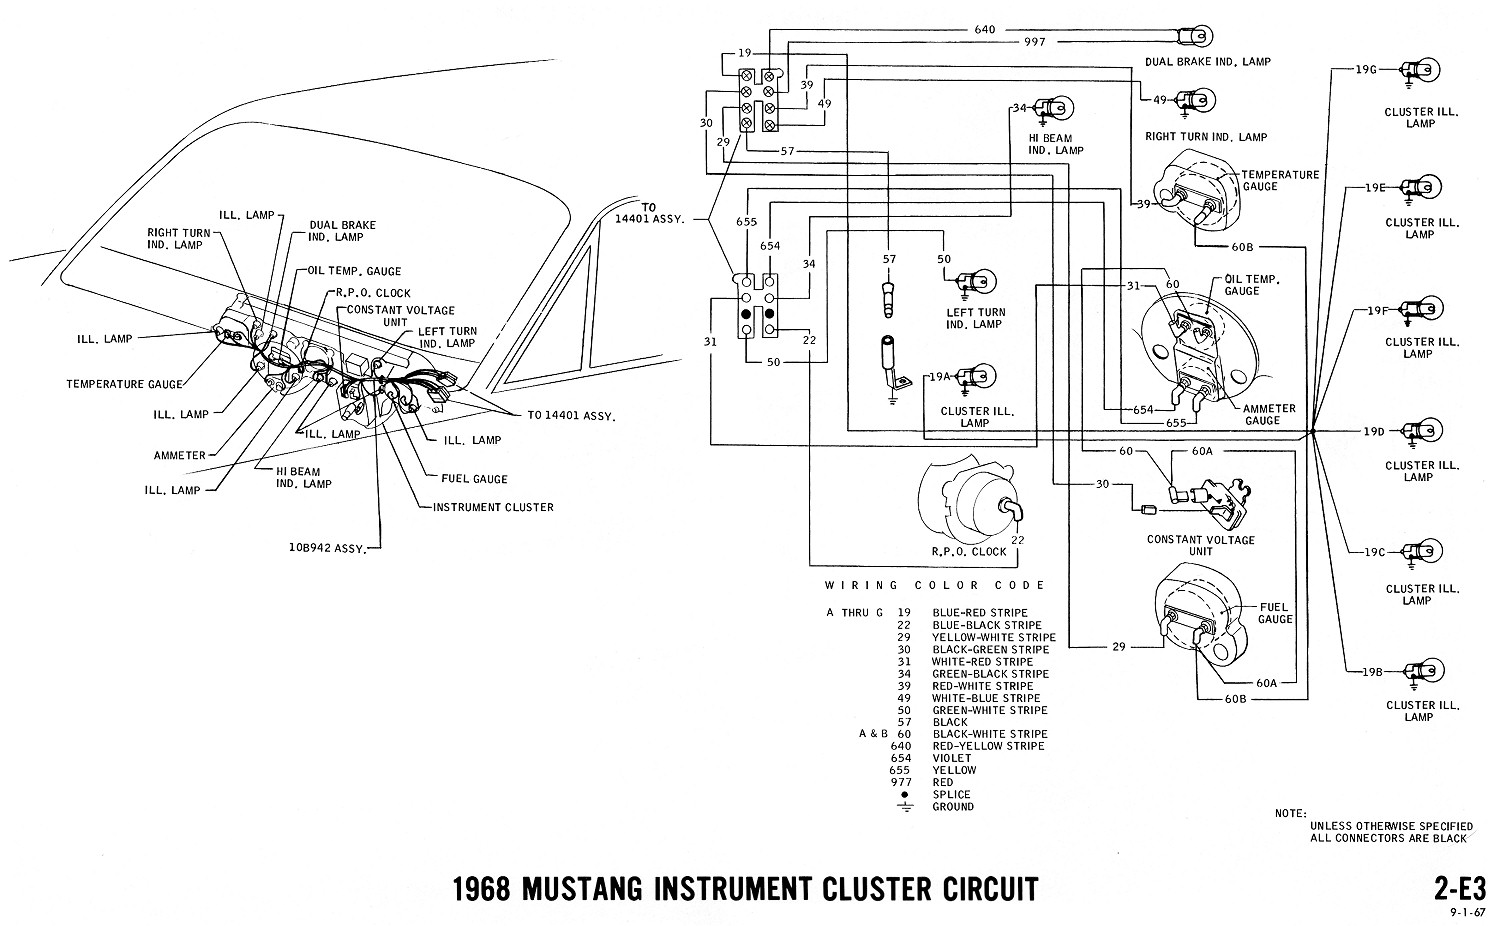 E3 1968 mustang wiring diagrams evolving software 1965 mustang instrument cluster wiring diagram at n-0.co